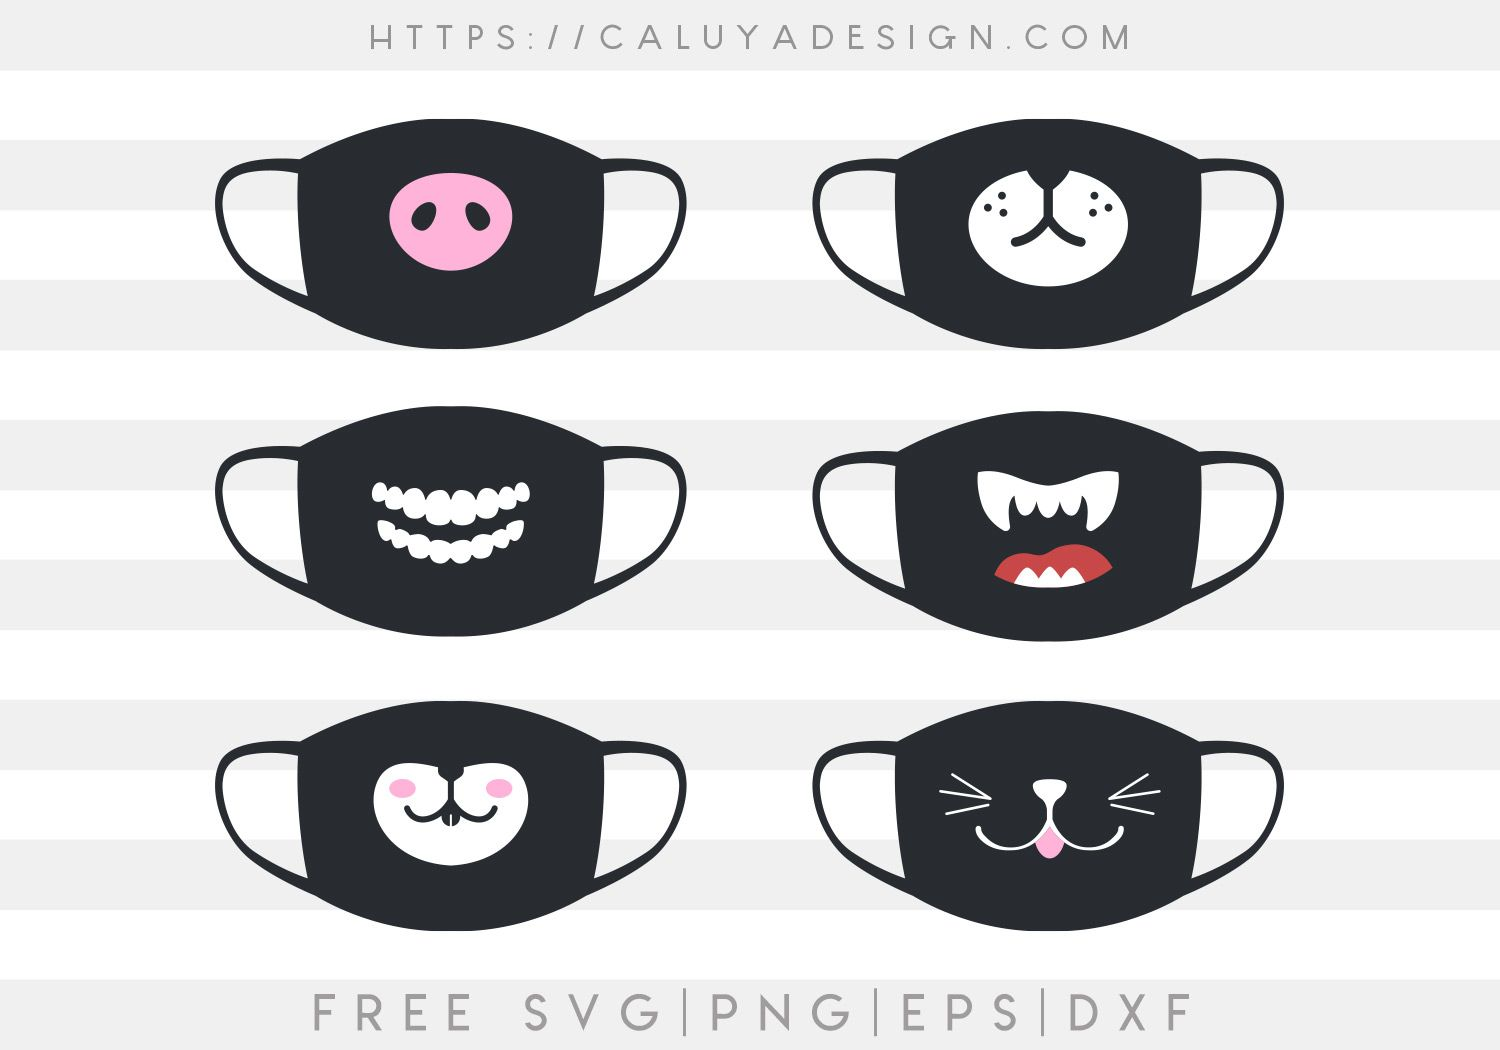 Free Funny Mask Mouth Svg Png Eps Dxf By Caluya Design In 2020 Svg Funny Mask Mask Design